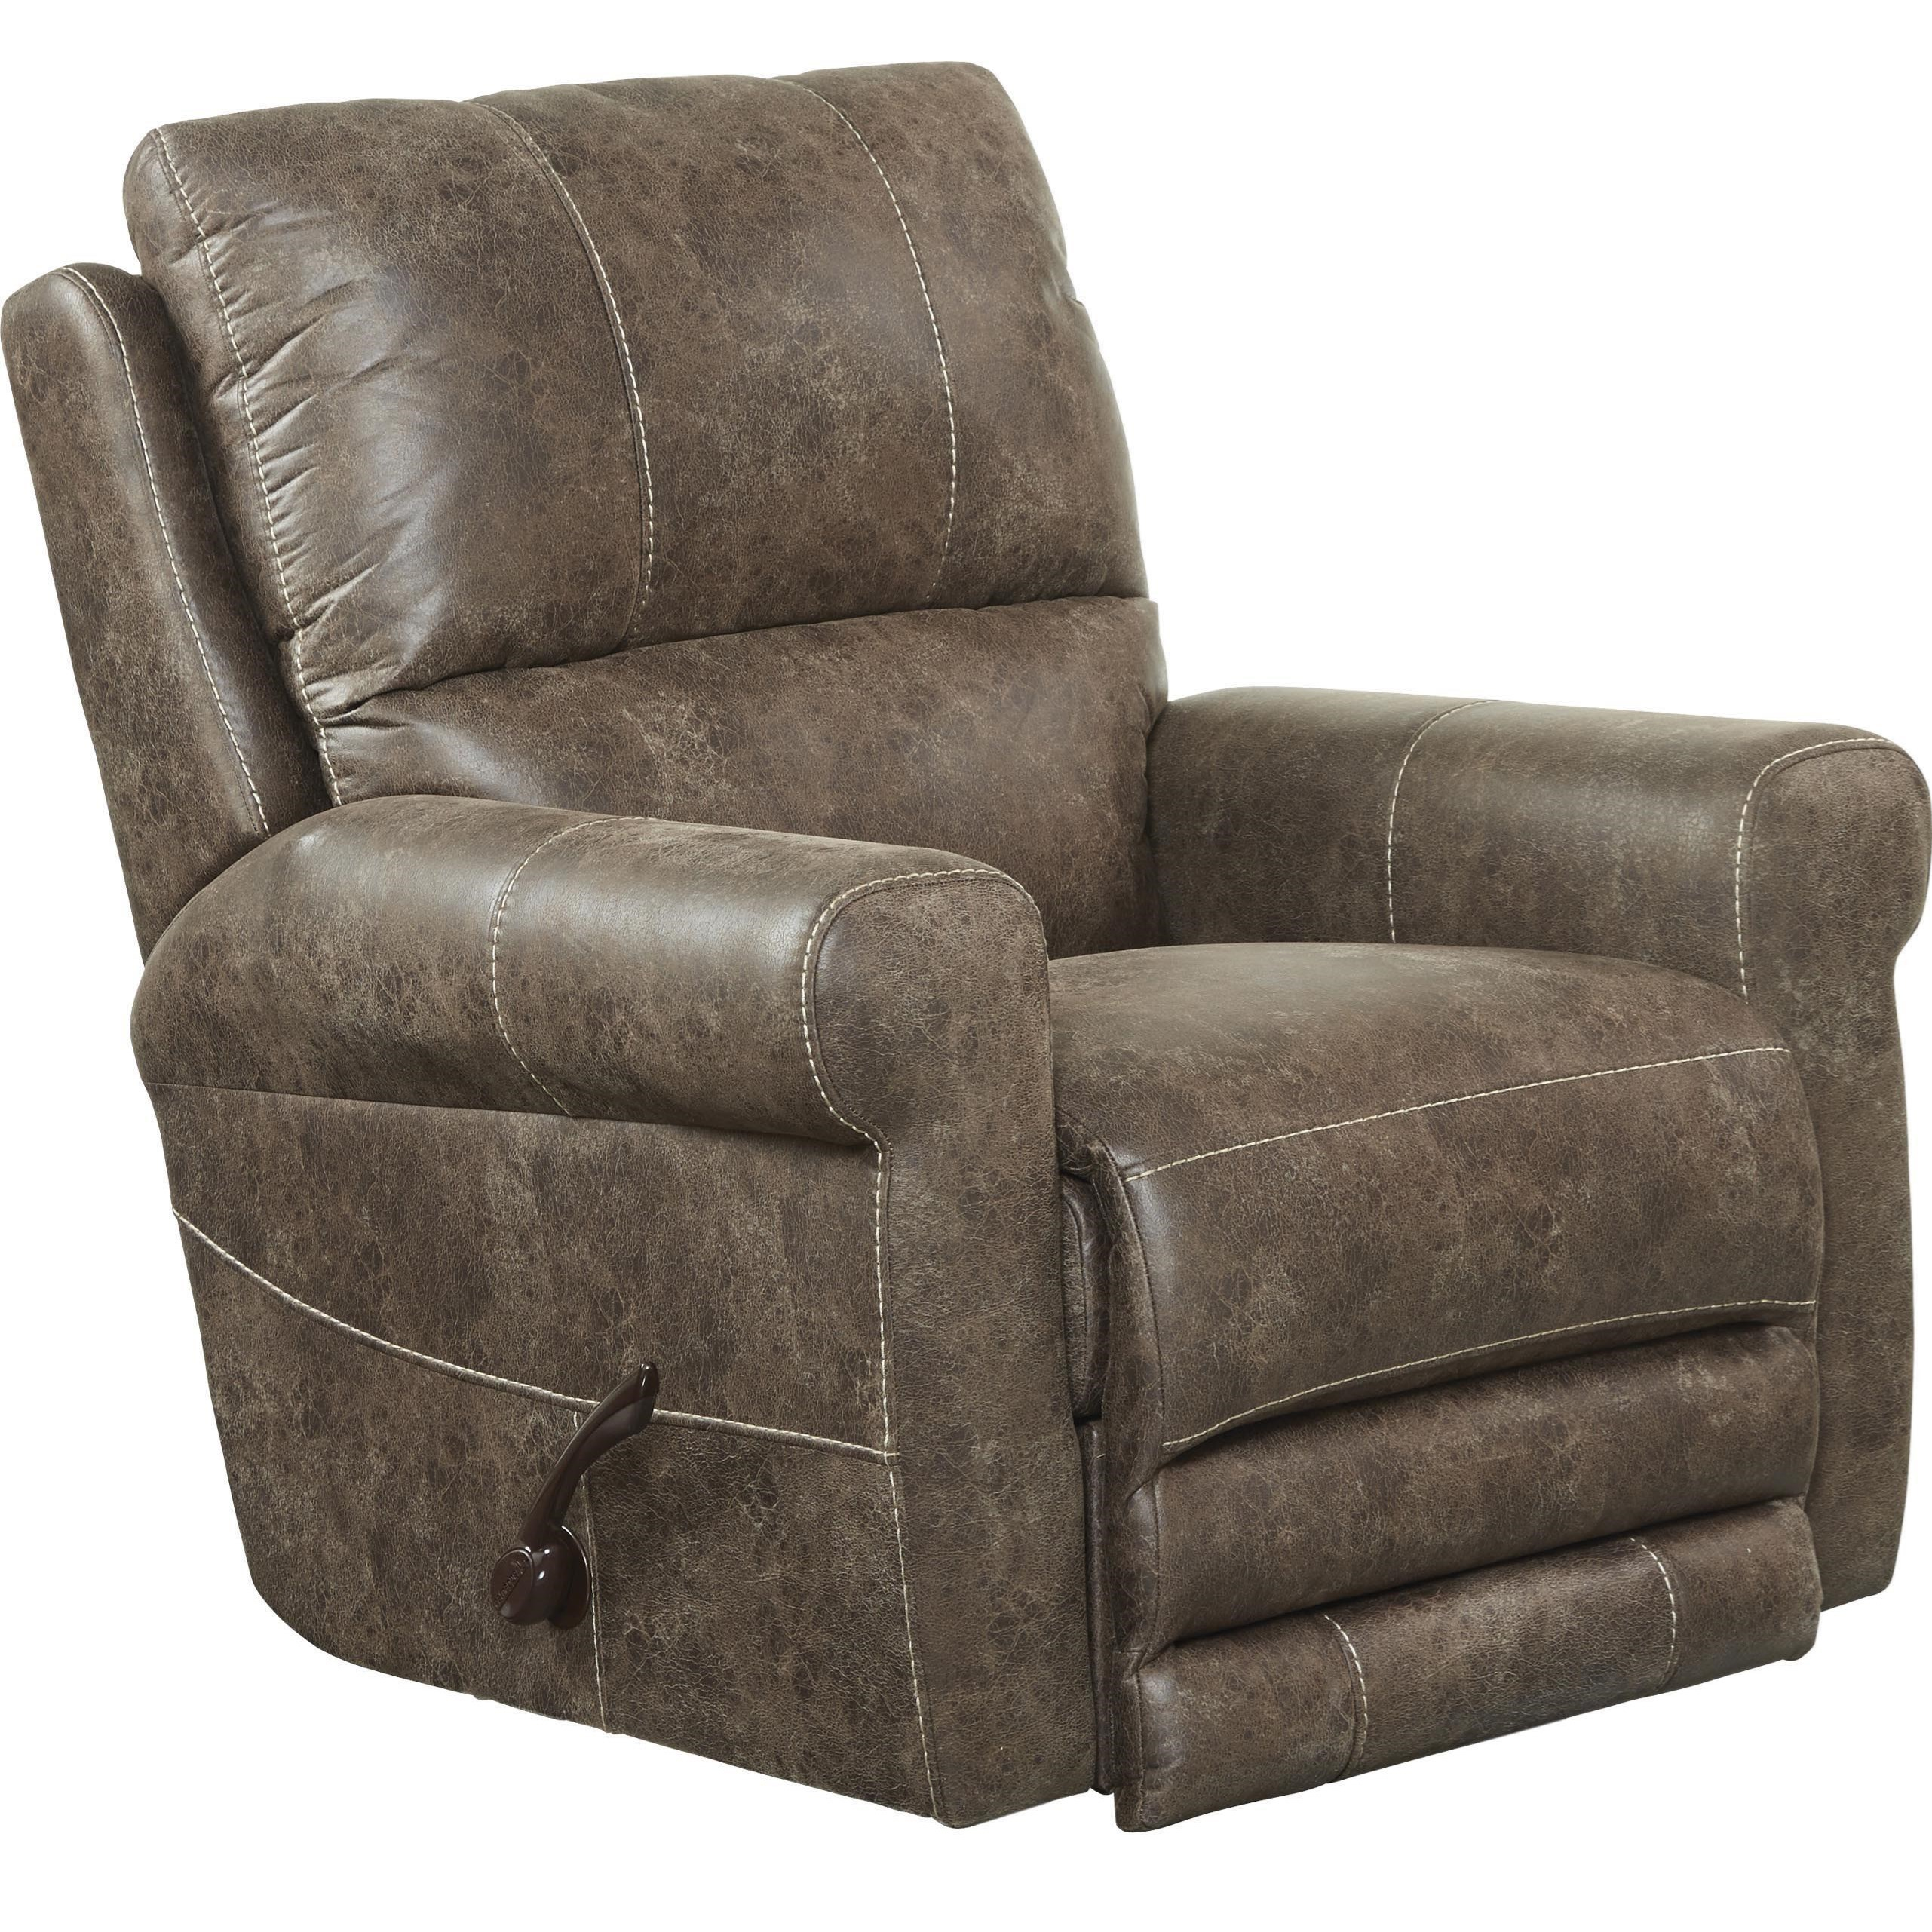 Maddie Swivel Glider Recliner by Catnapper at Standard Furniture